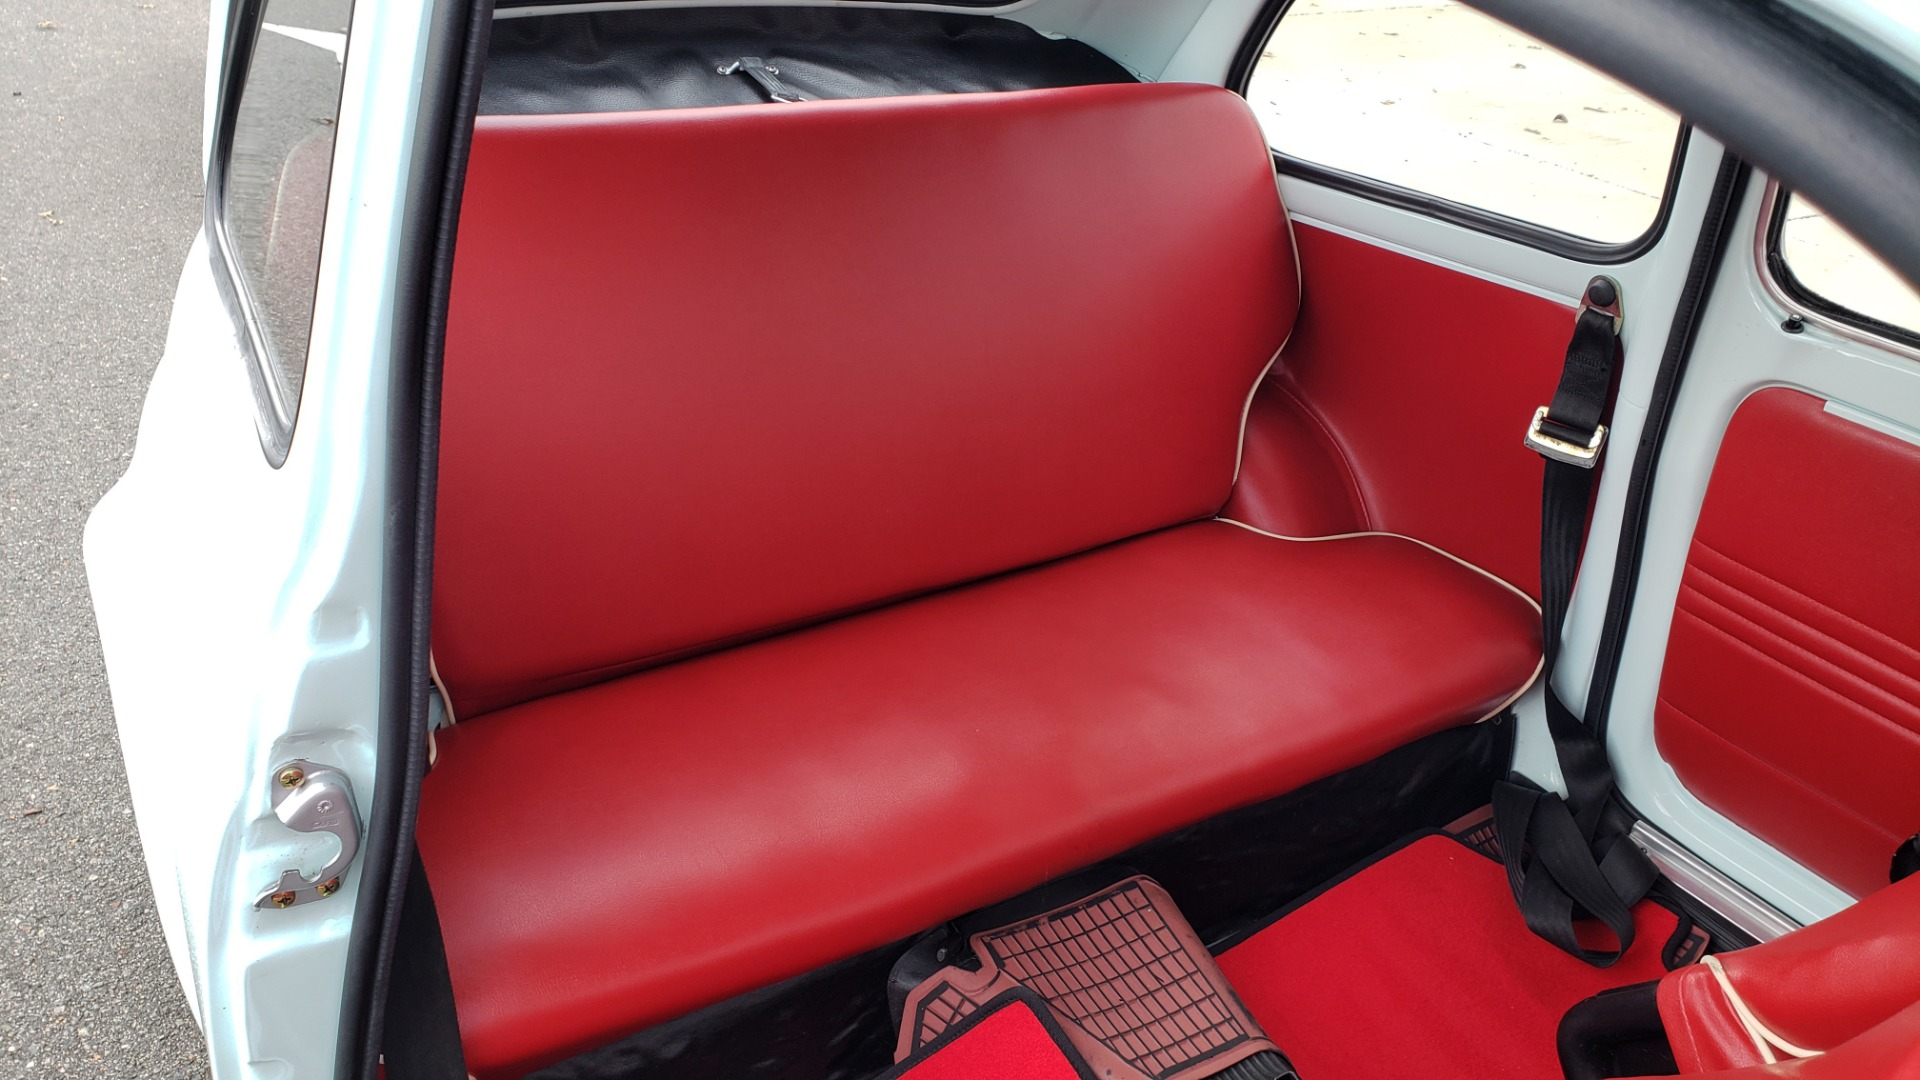 Used 1968 FIAT 500 NUOVA / SOFT-TOP / LUGGAGE RACK / RESTORED, LIKE NEW for sale $21,900 at Formula Imports in Charlotte NC 28227 32